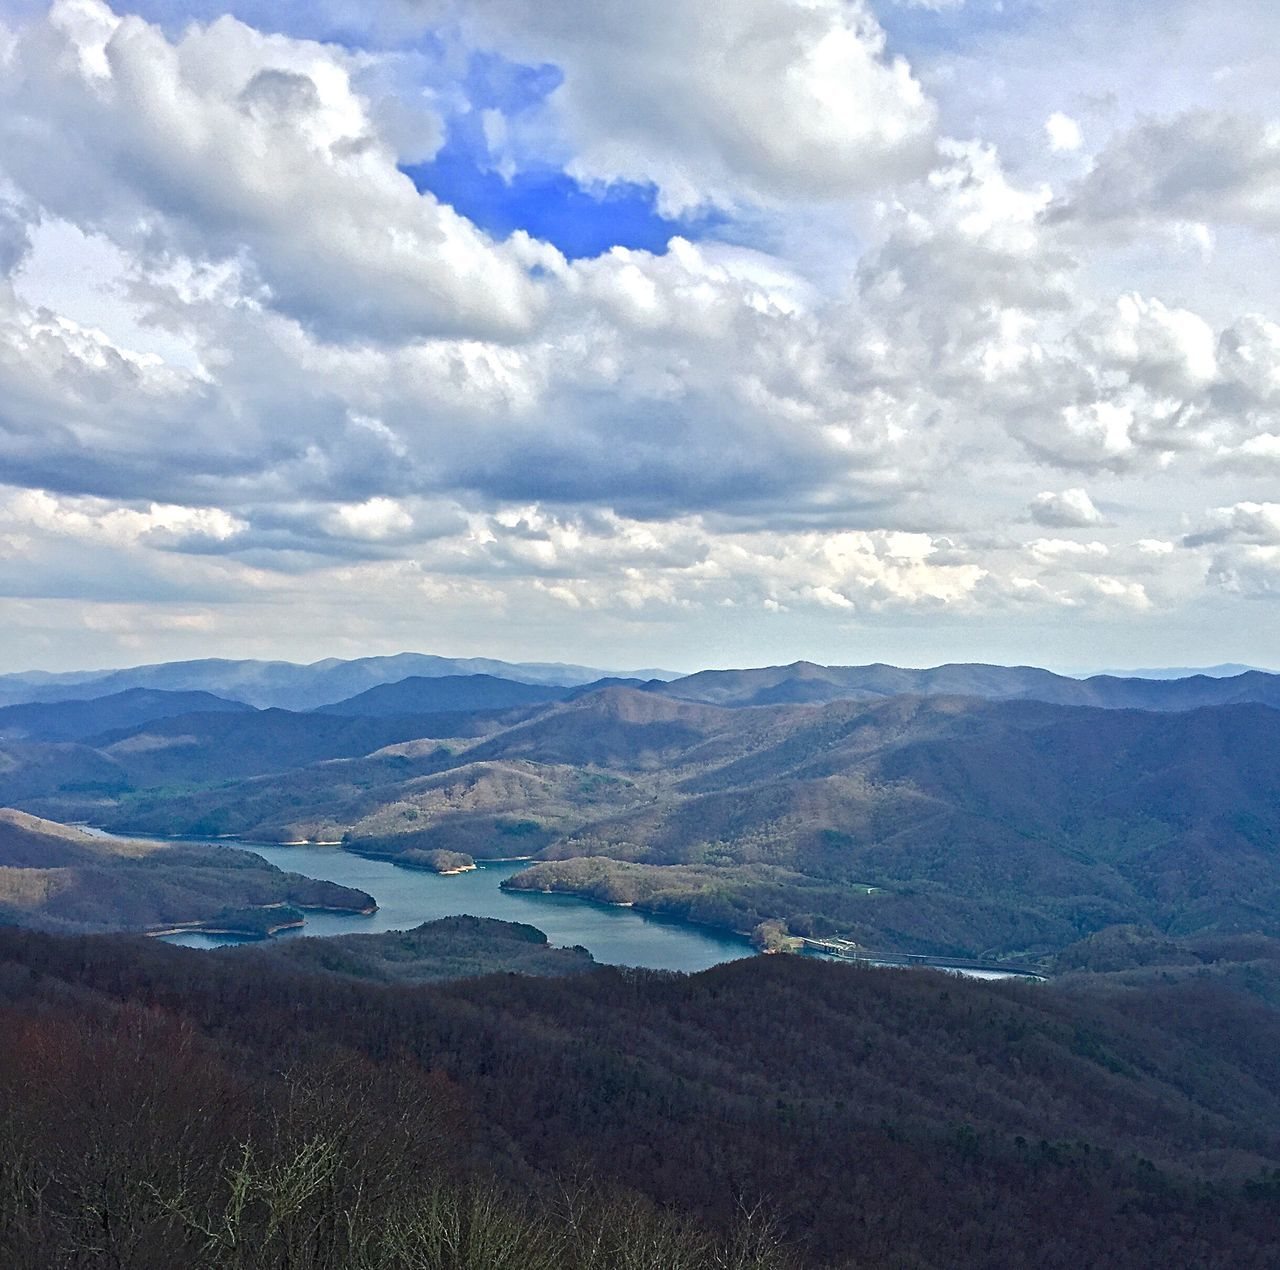 View of Fontana Lake from the Shuckstack Firetower on the Appalachian Trail in Smoky Mountain National Park Adventure Appalachian Trail Backpacking Beauty In Nature Clouds Cloudy Fontana Lake Hiking Lake Mountain Mountain Range Mountains Nature North Carolina Outdoors Shuckstack Firetower Sky Smoky Mountain National Park The Great Smoky Mountains Tranquility